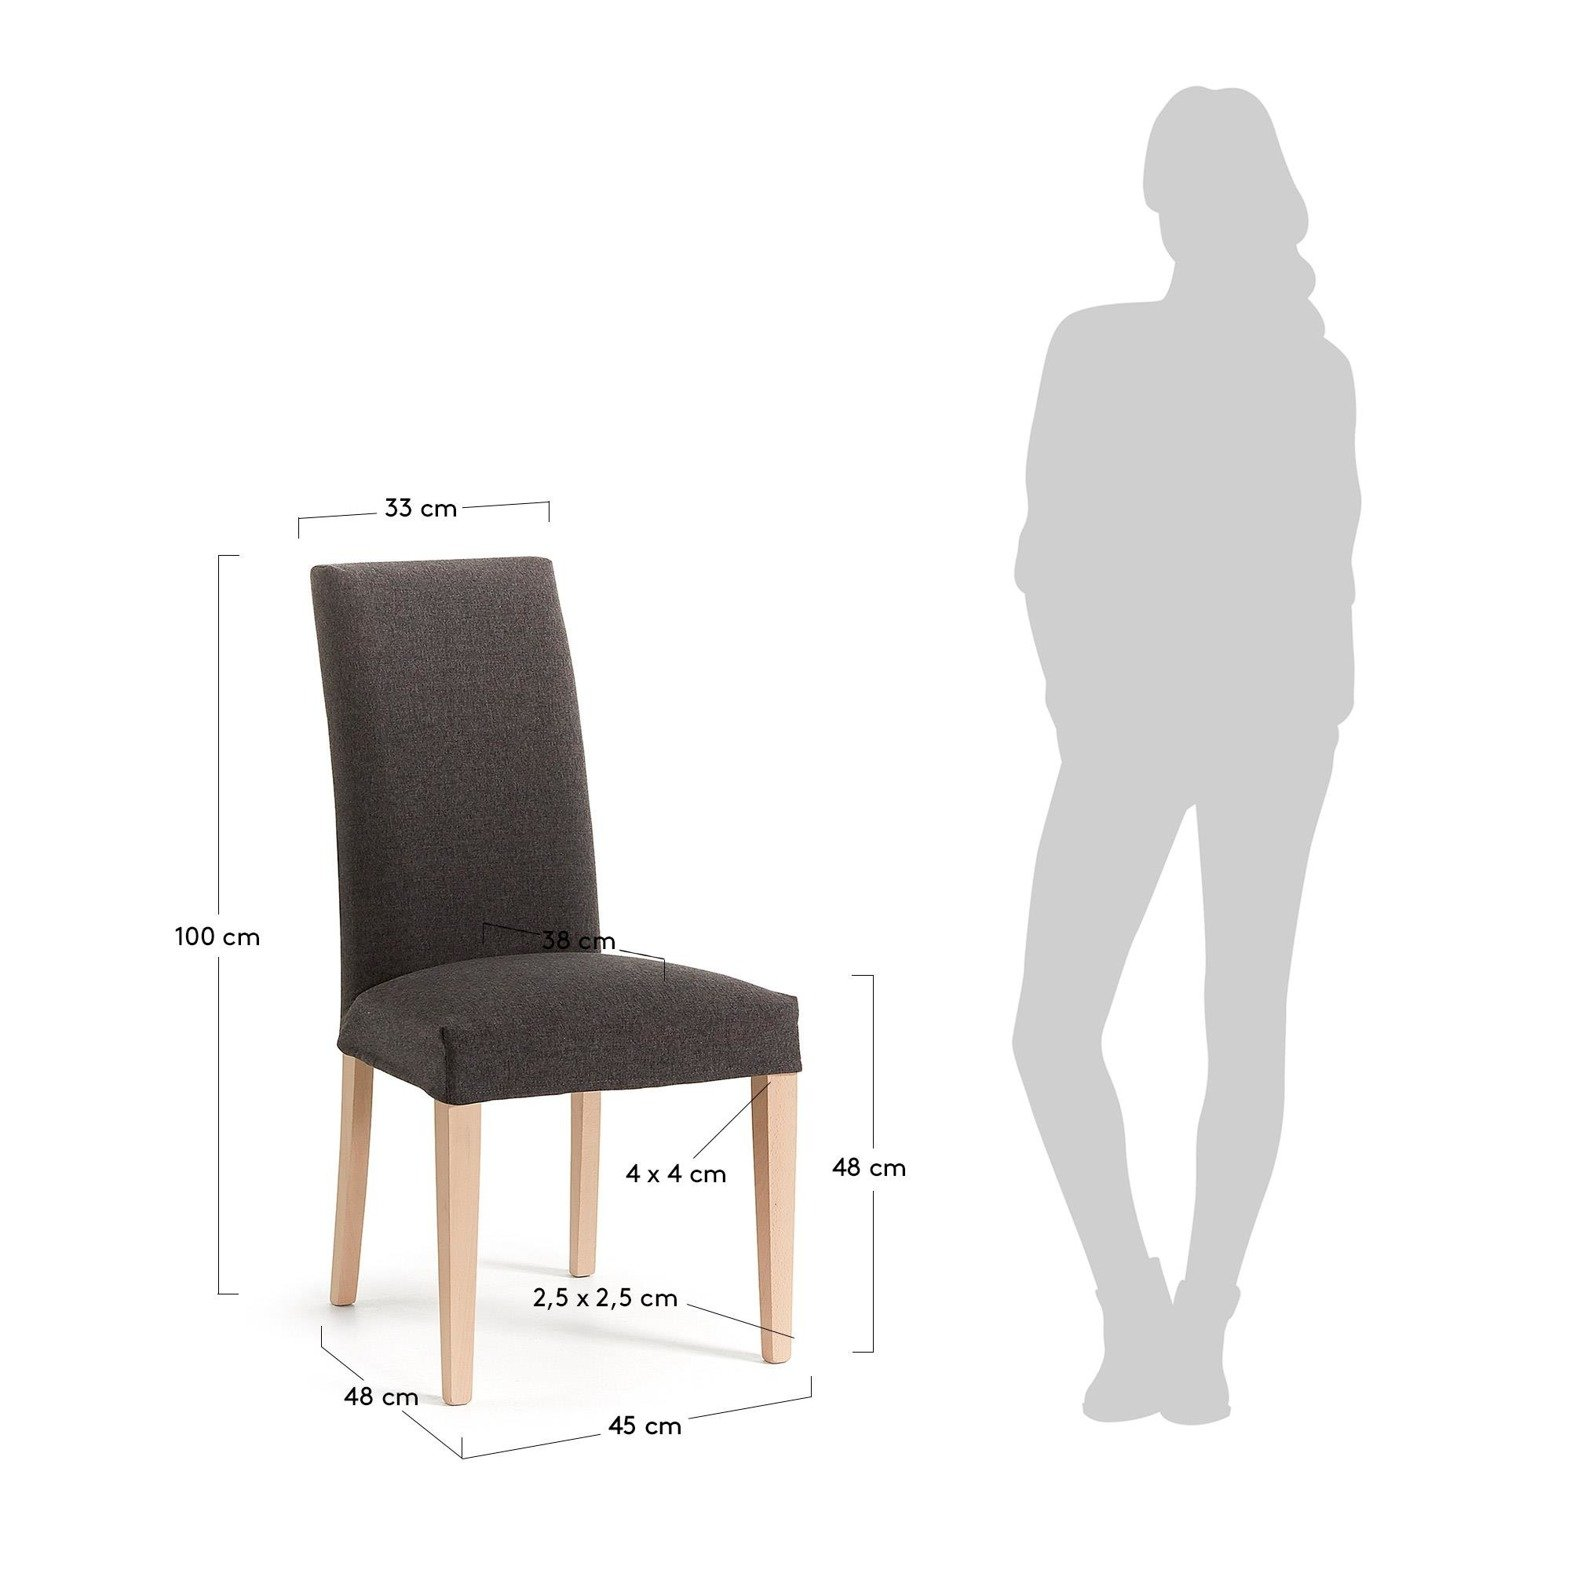 MERCEDE Chair removable natural wood fabric graphite